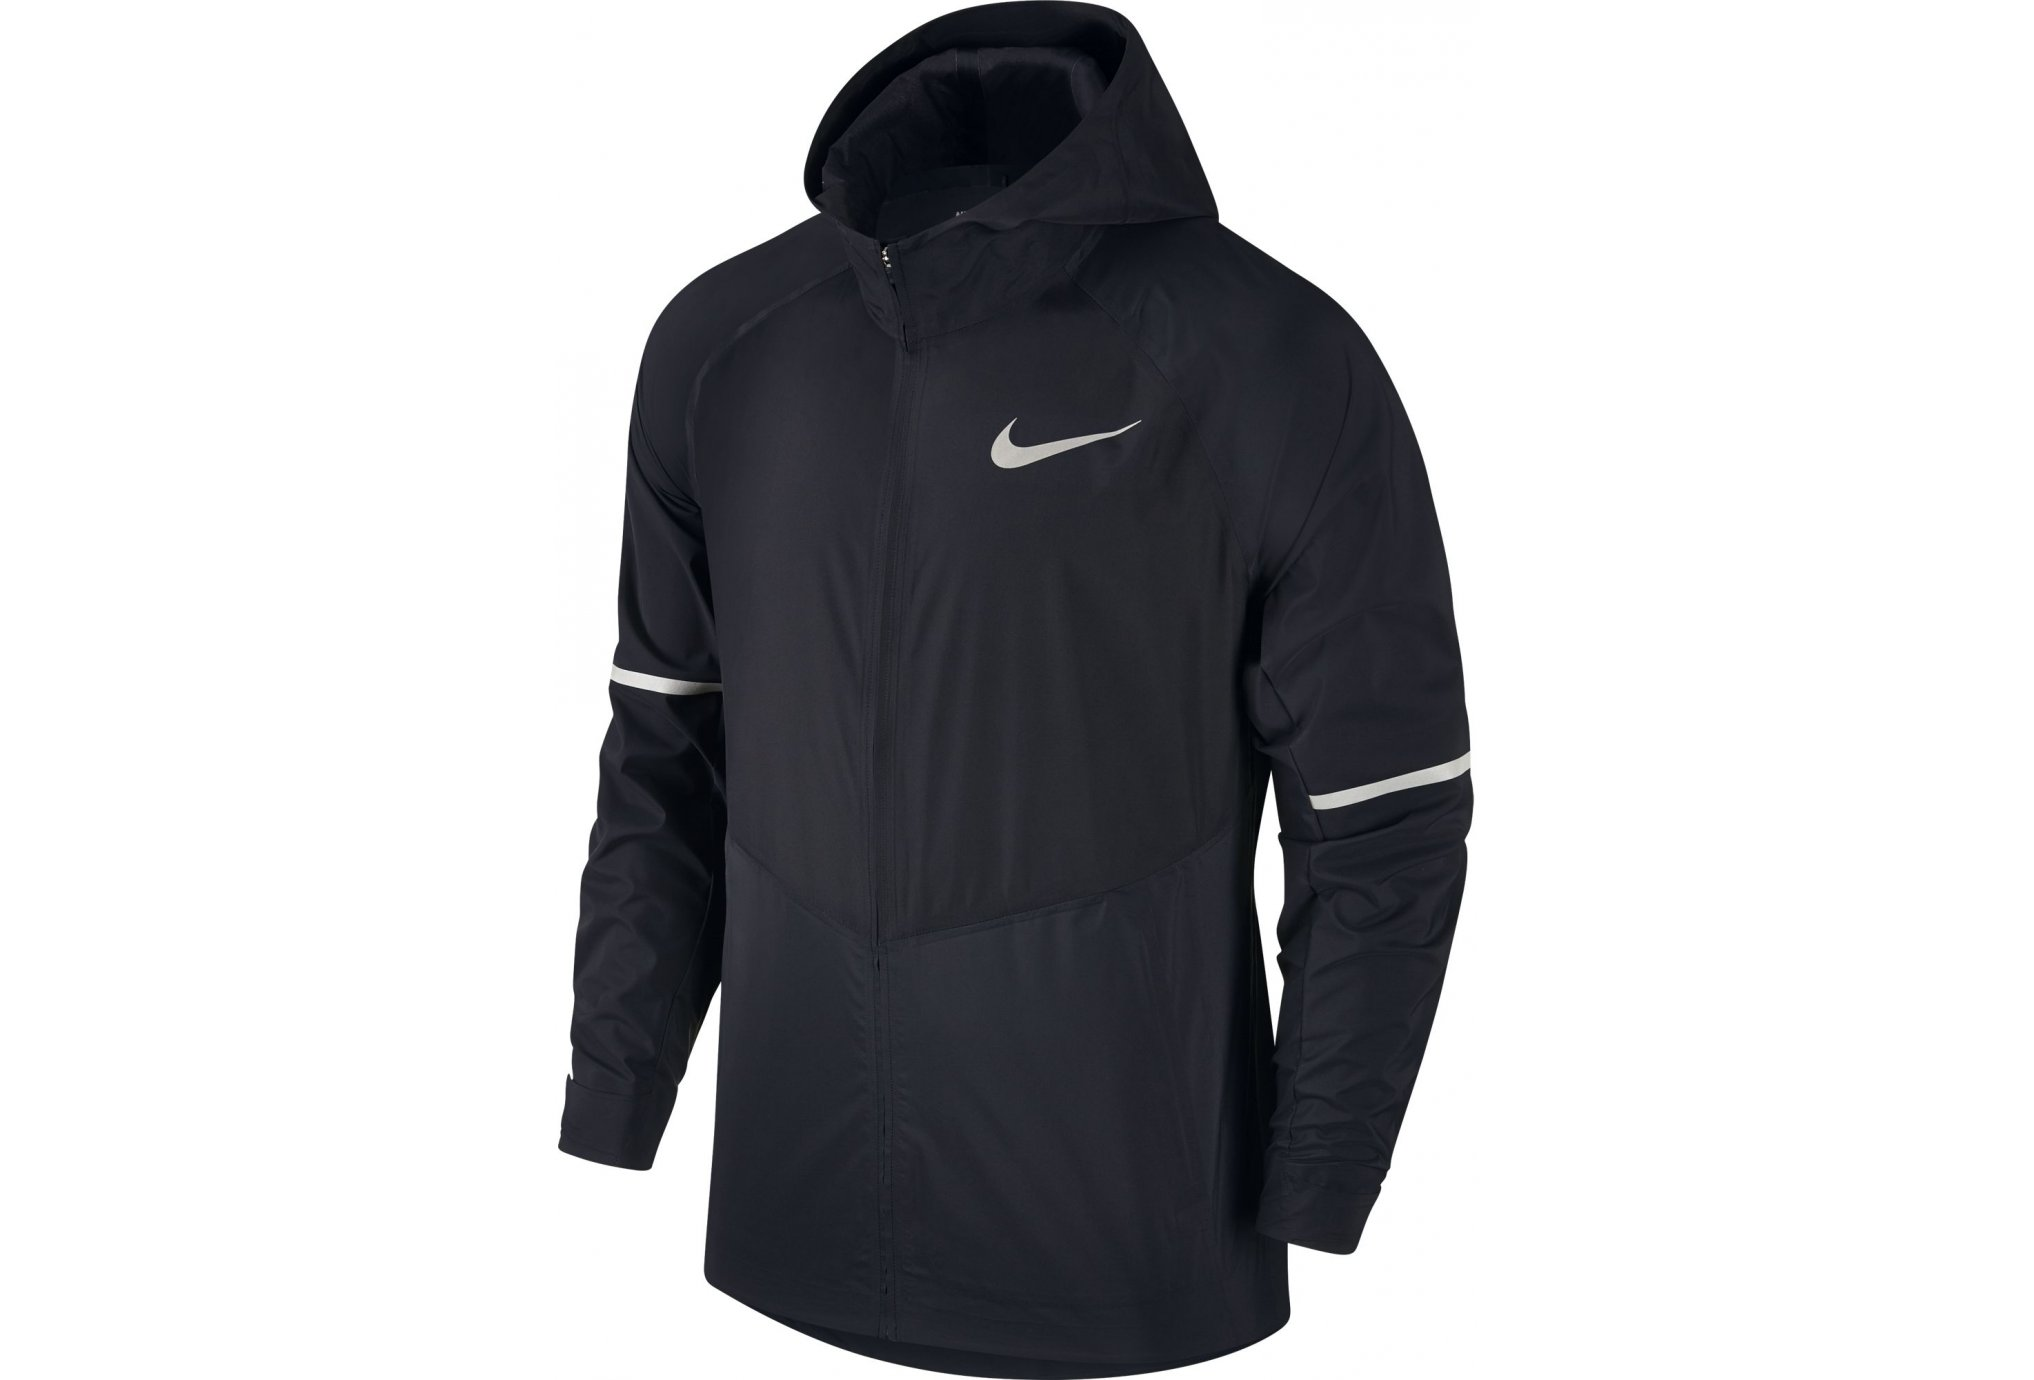 nike-zonal-aeroshield-hooded-m-vetements-homme-190861-1-fz